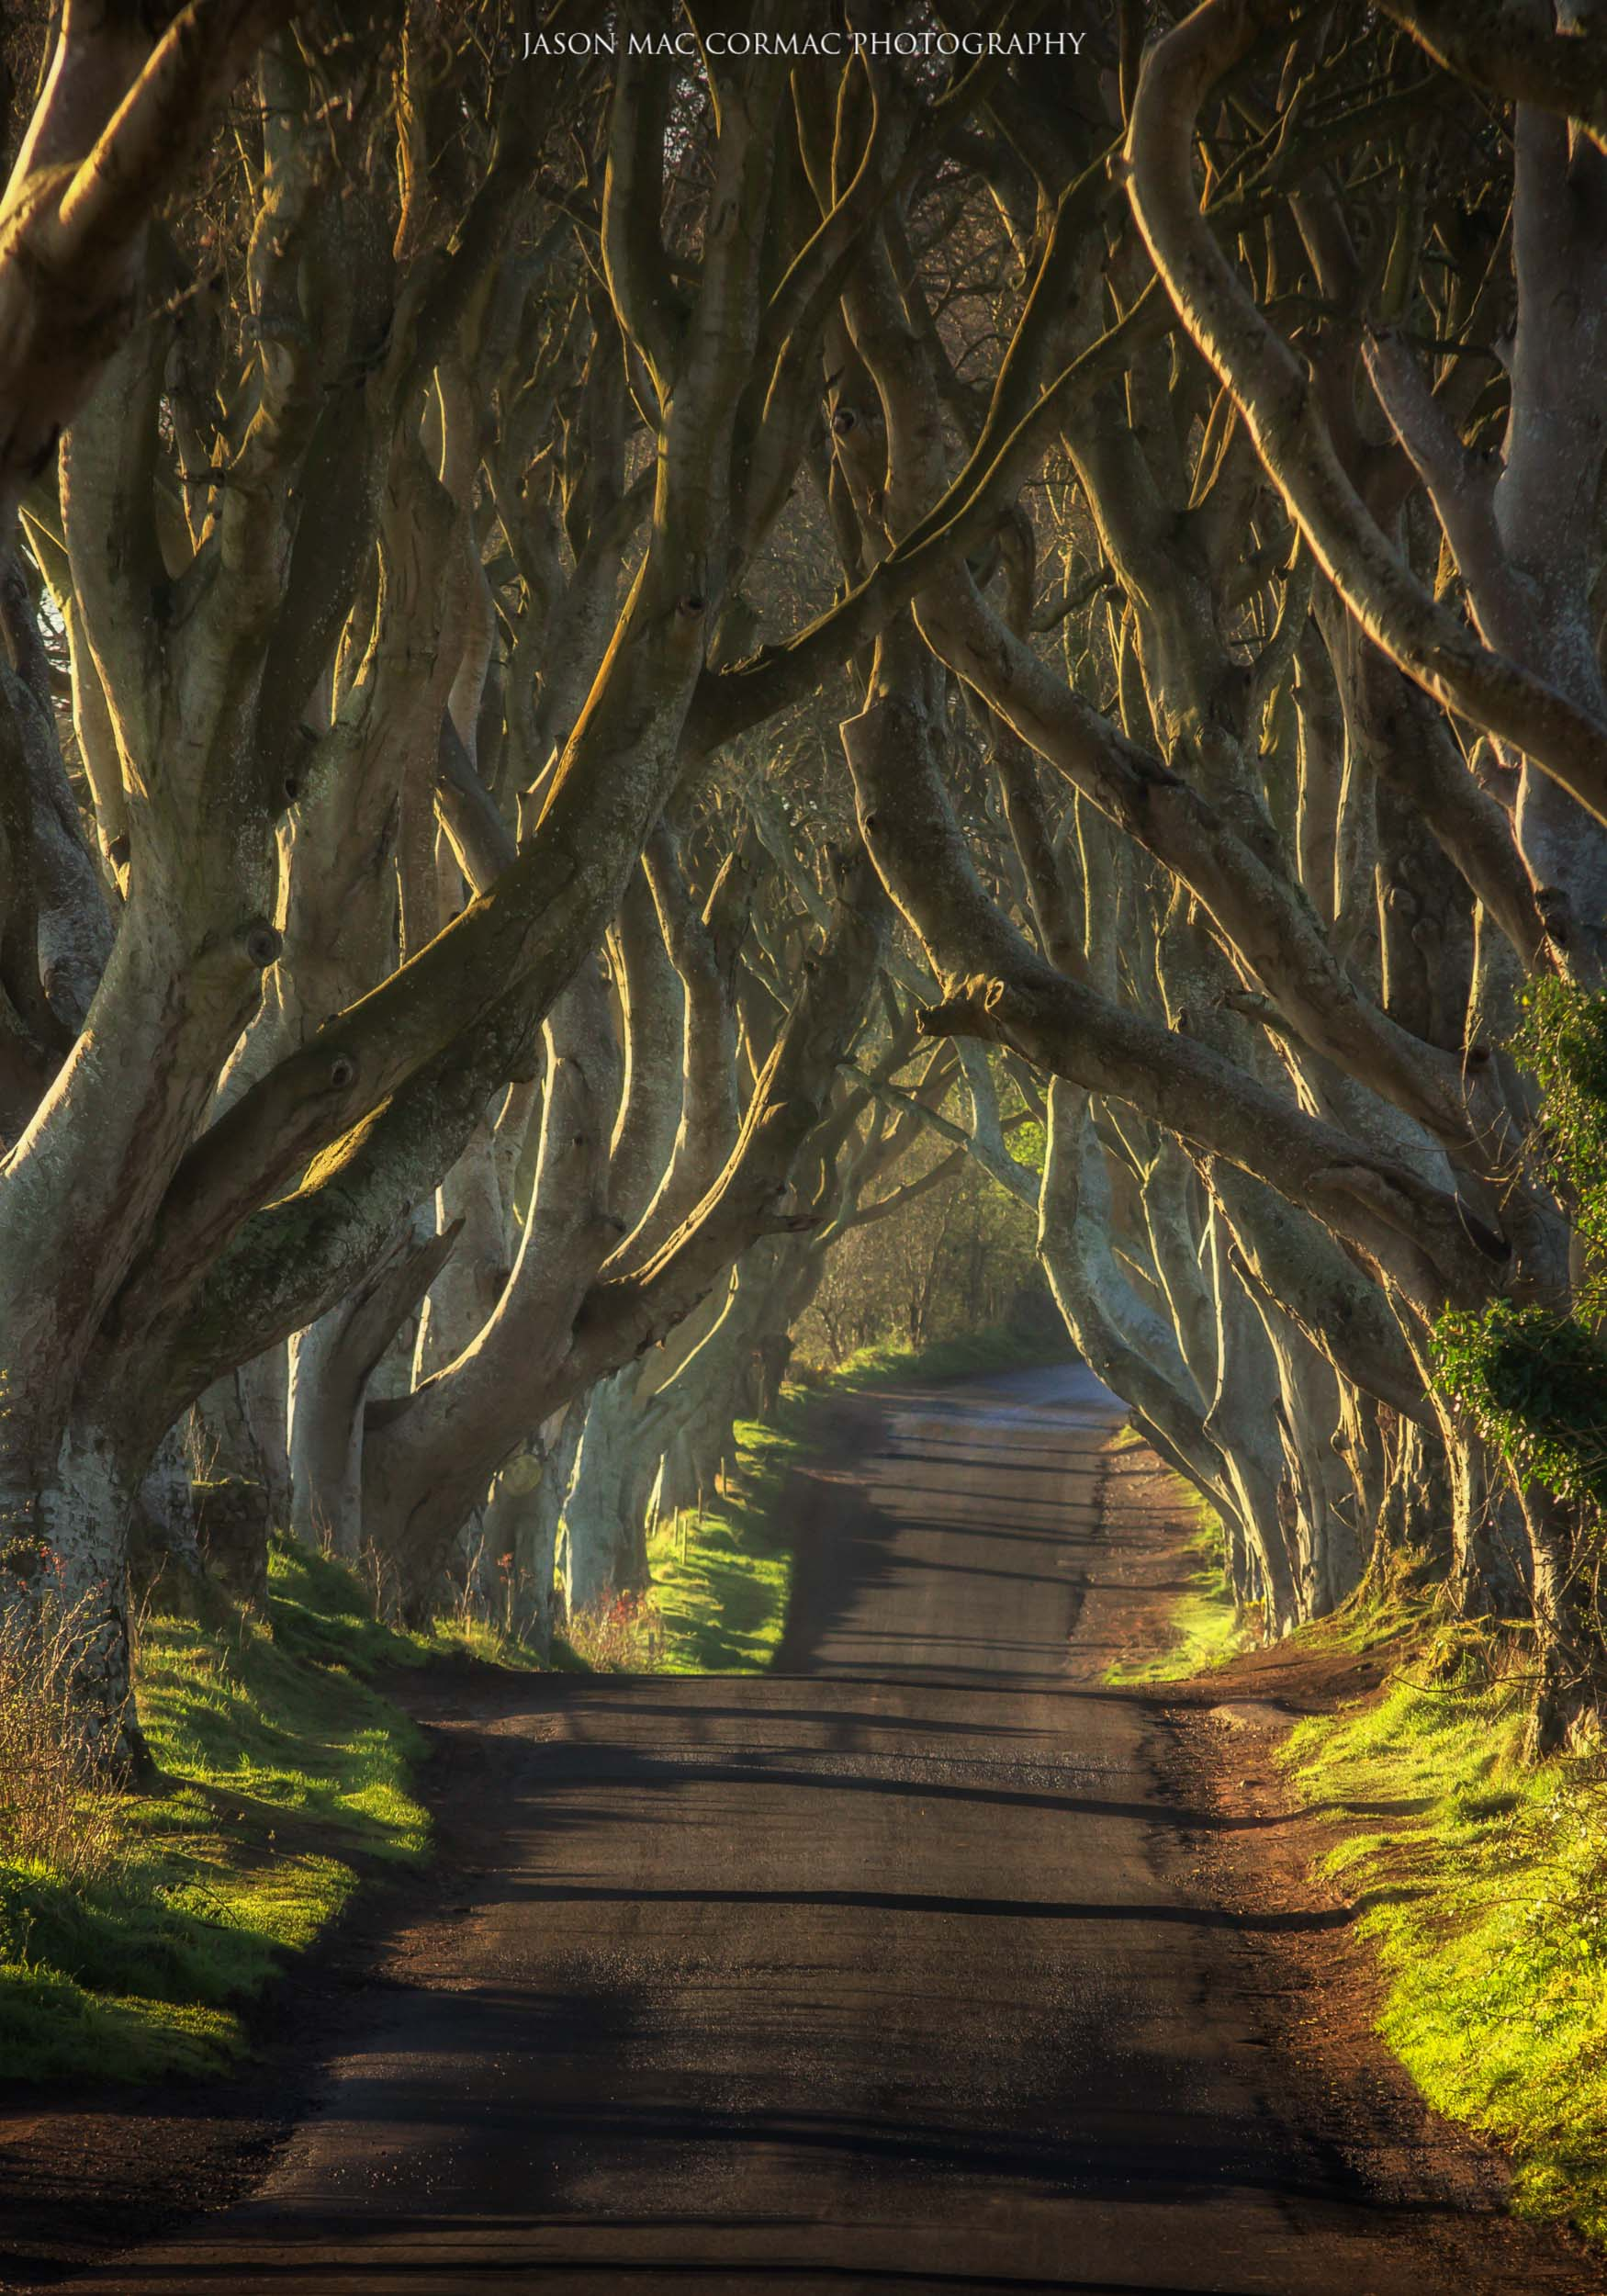 15. Dark Hedges